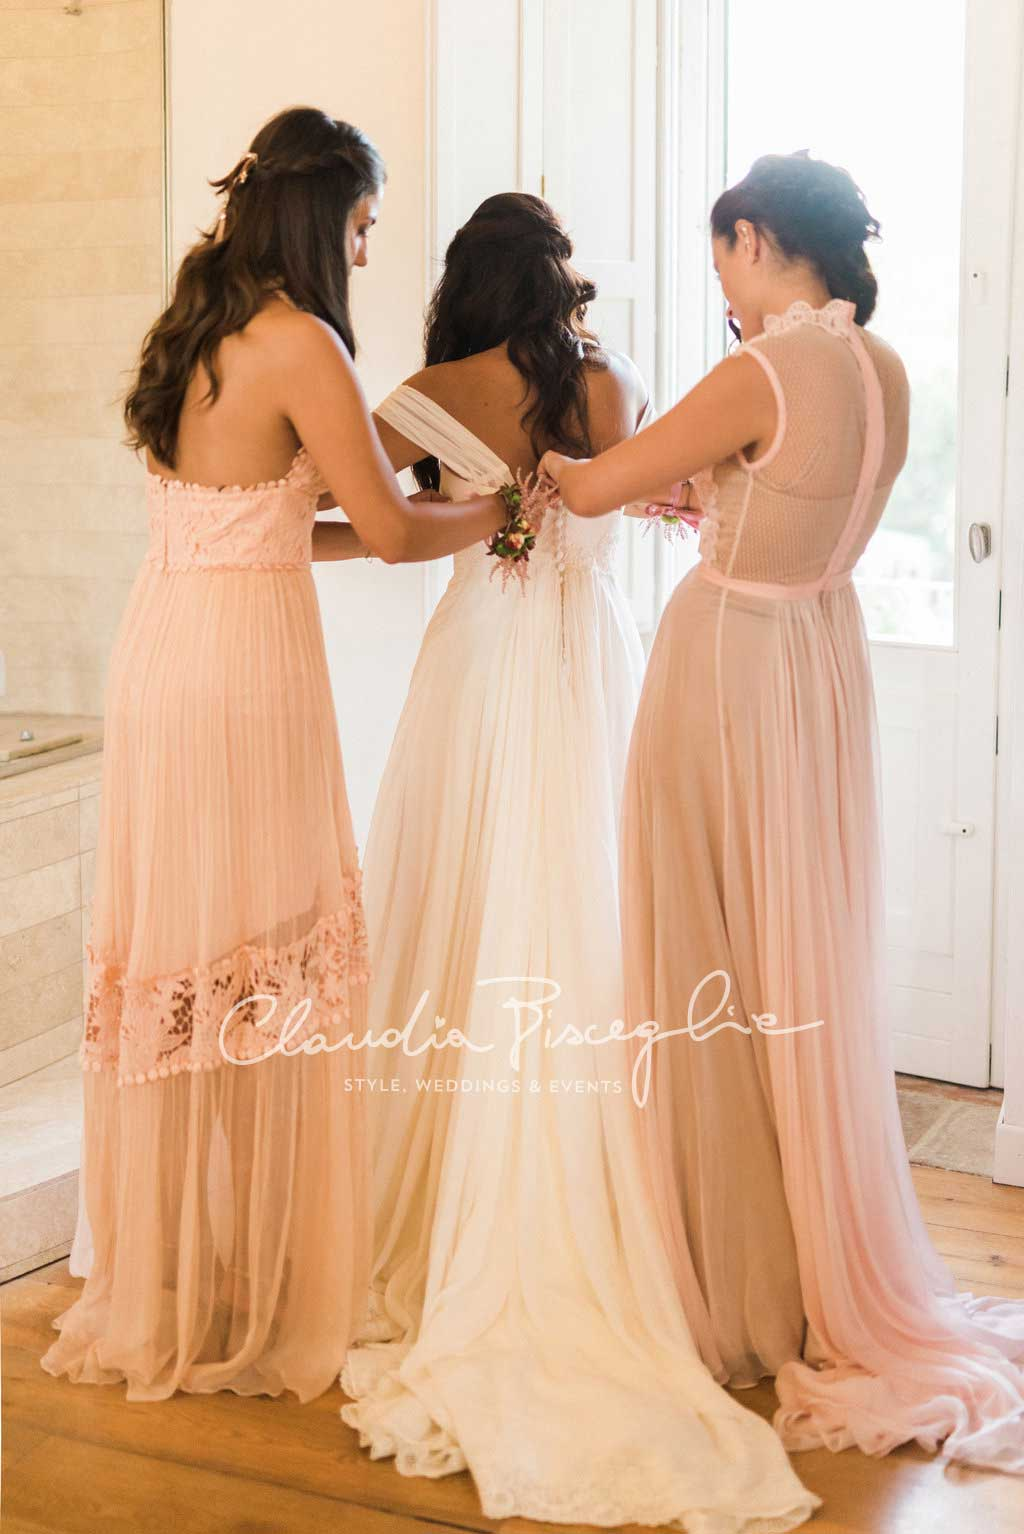 -Bride-gettingprepared-dress-bridemaid-ClaudiaBisceglieweddingpanner